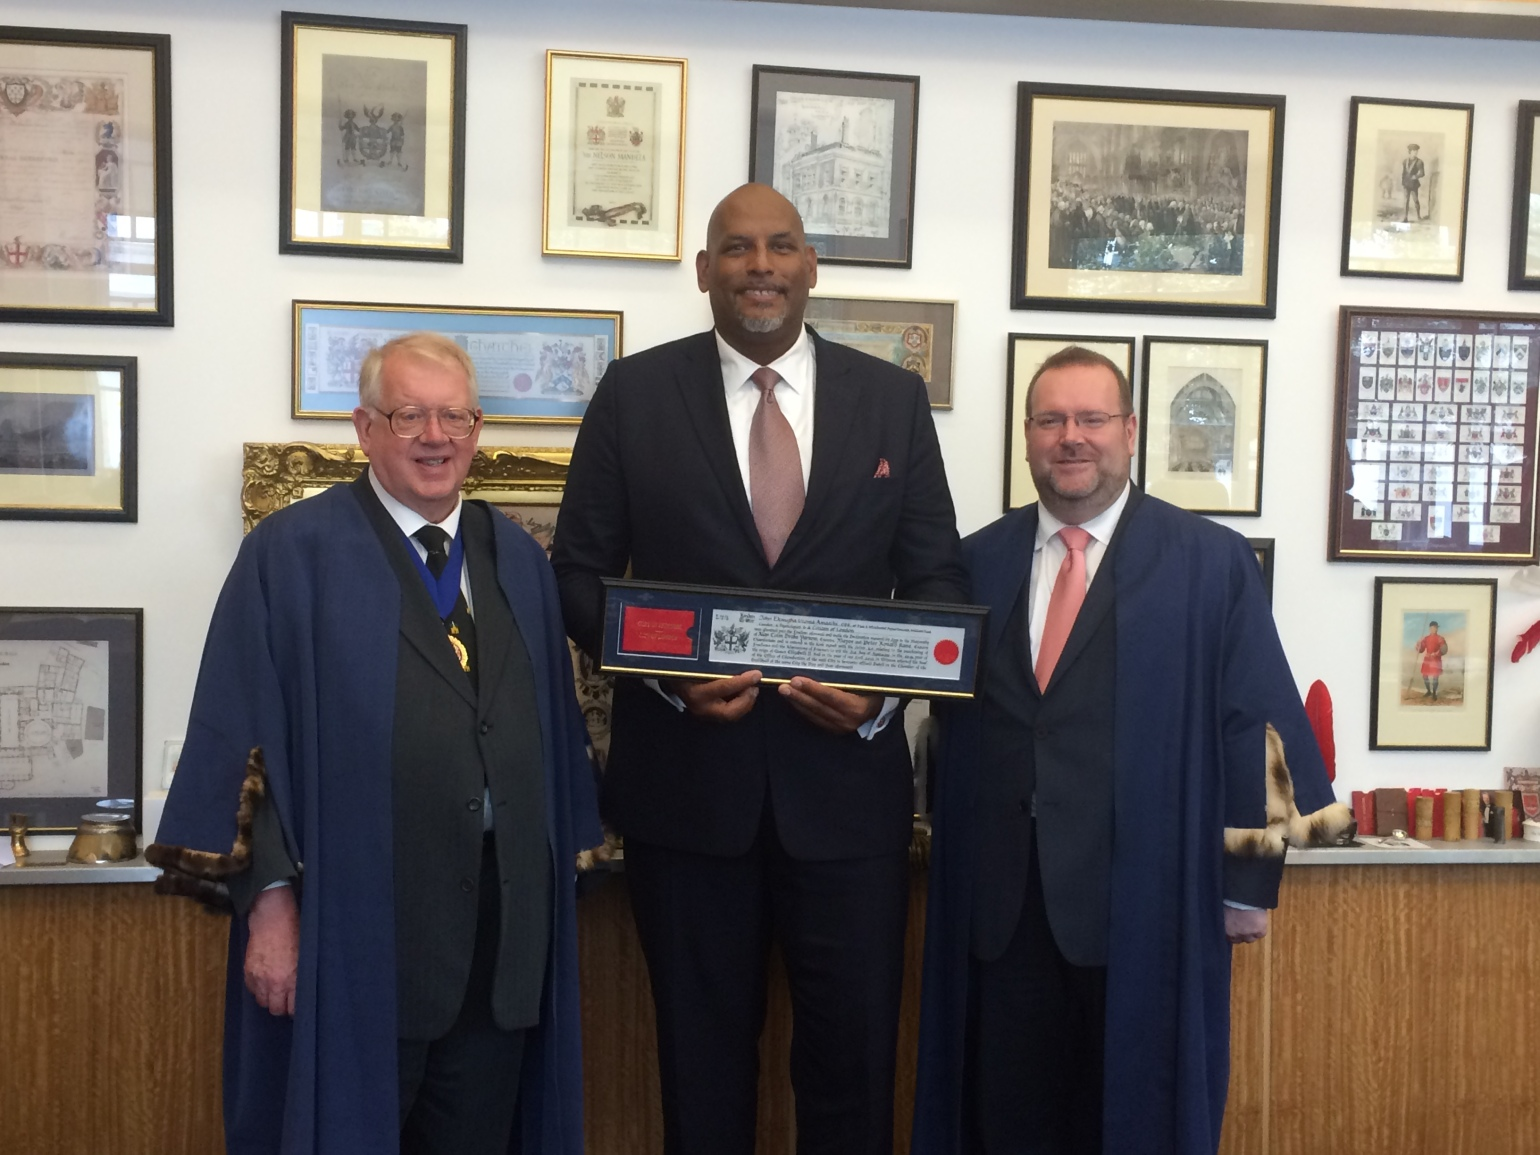 Celebrating basketball star and diversity campaigner John Amaechi OBE receiving the freedom of the City of London, along with the Chief Commoner Billy Dove OBE JP